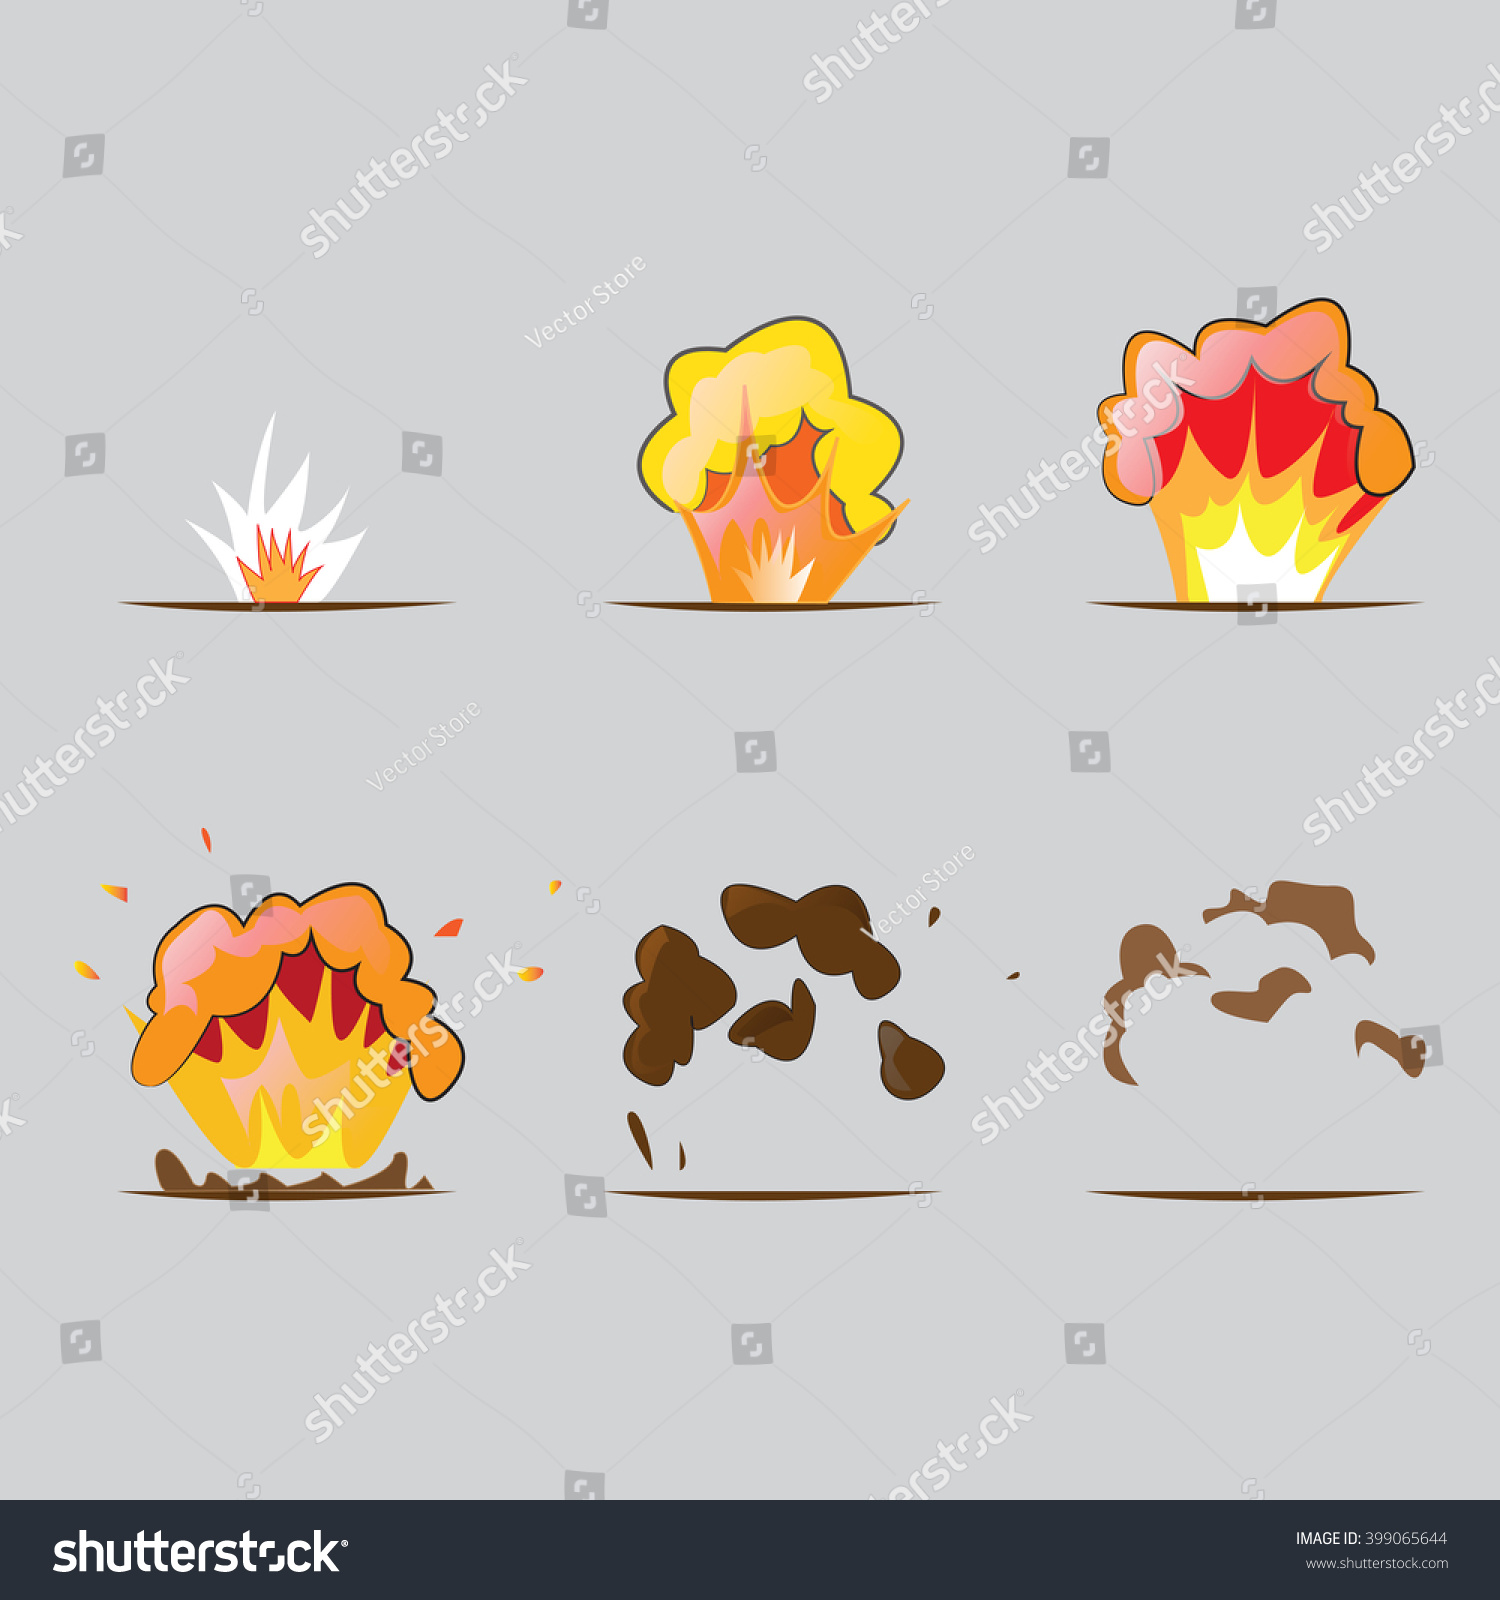 Set Explosion Effect Cartoon Style After Stock Vector (Royalty Free ...